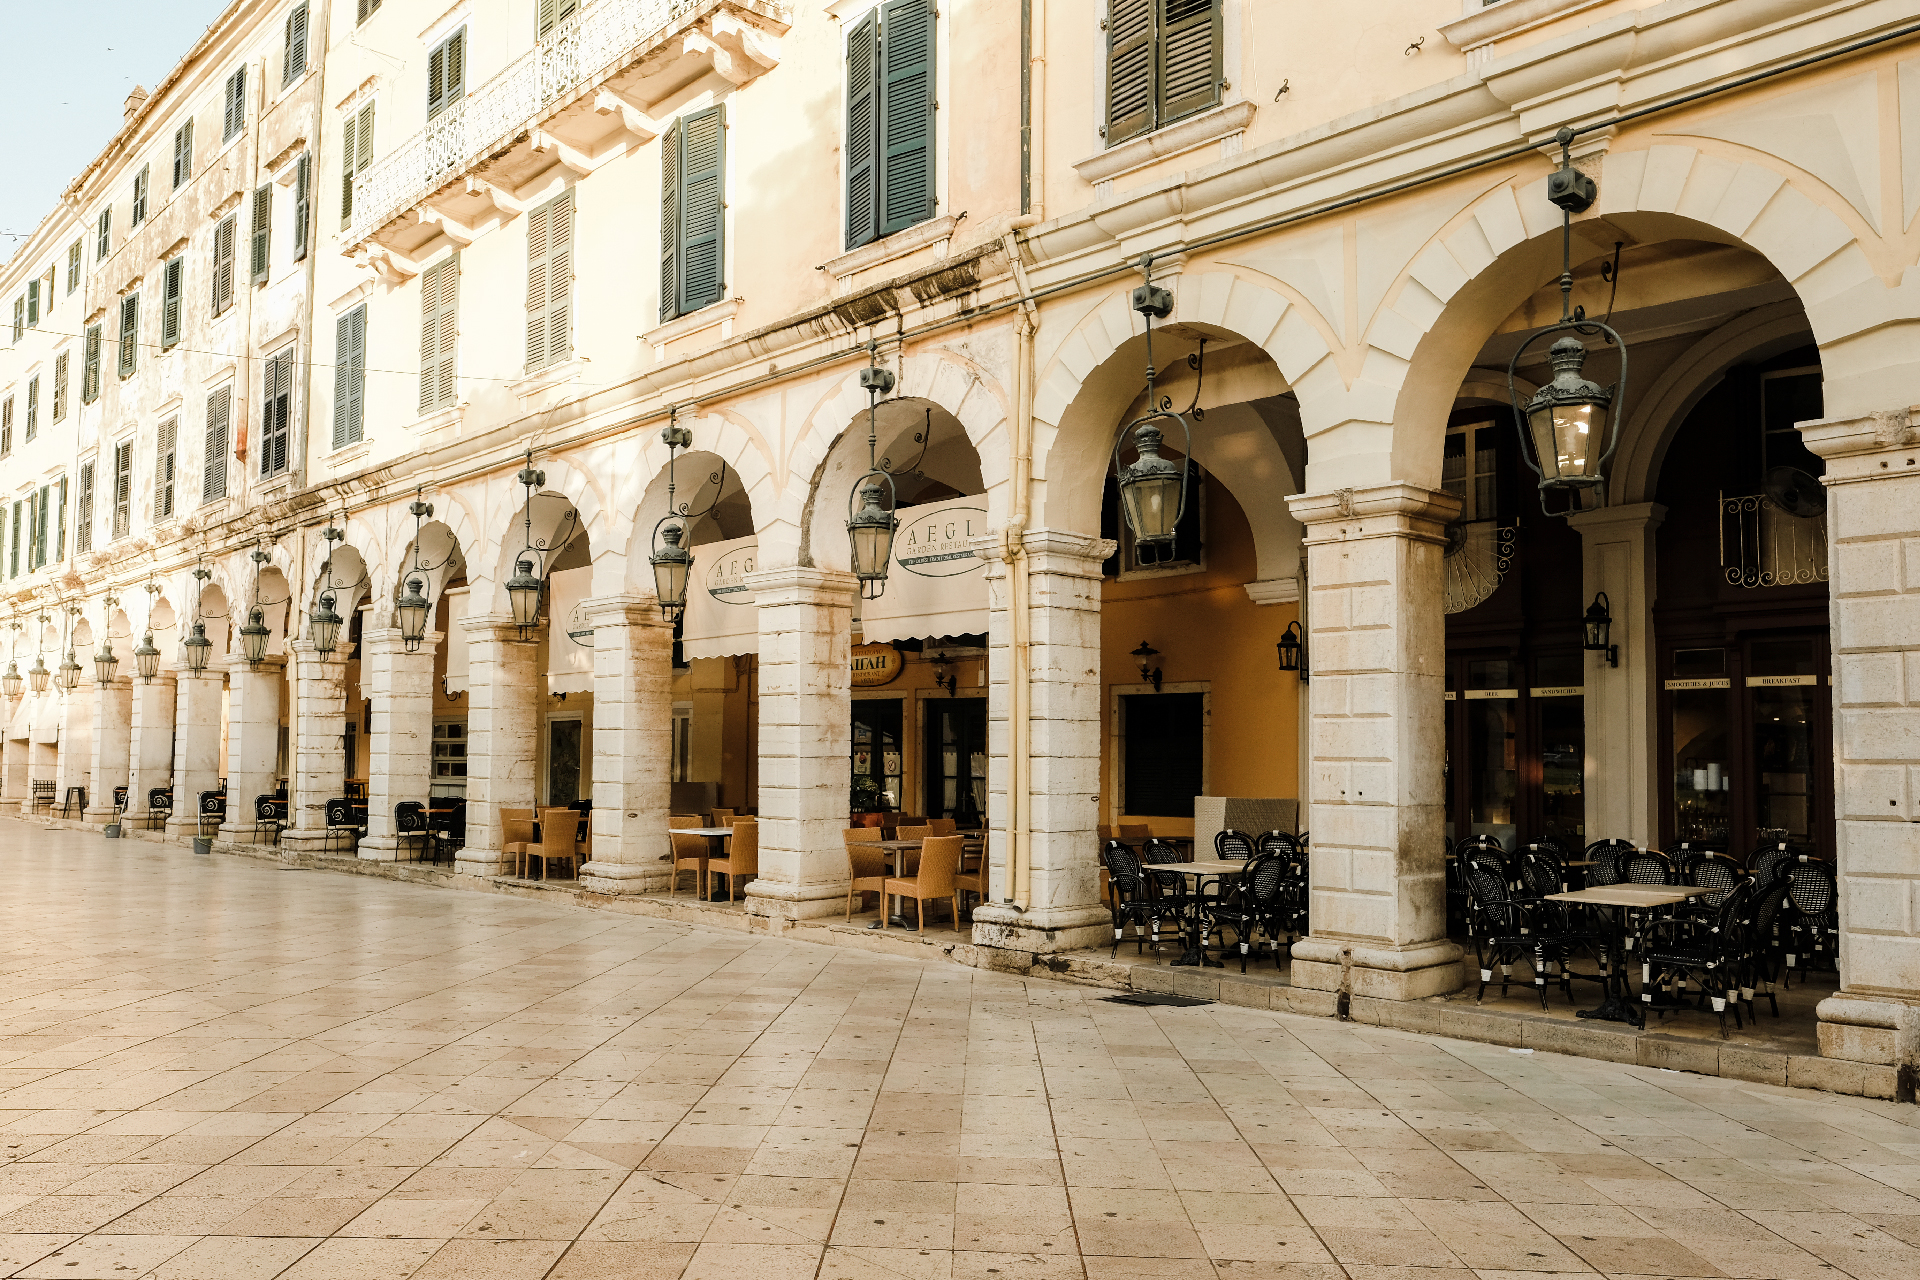 Arch formations in the streets of Corfu